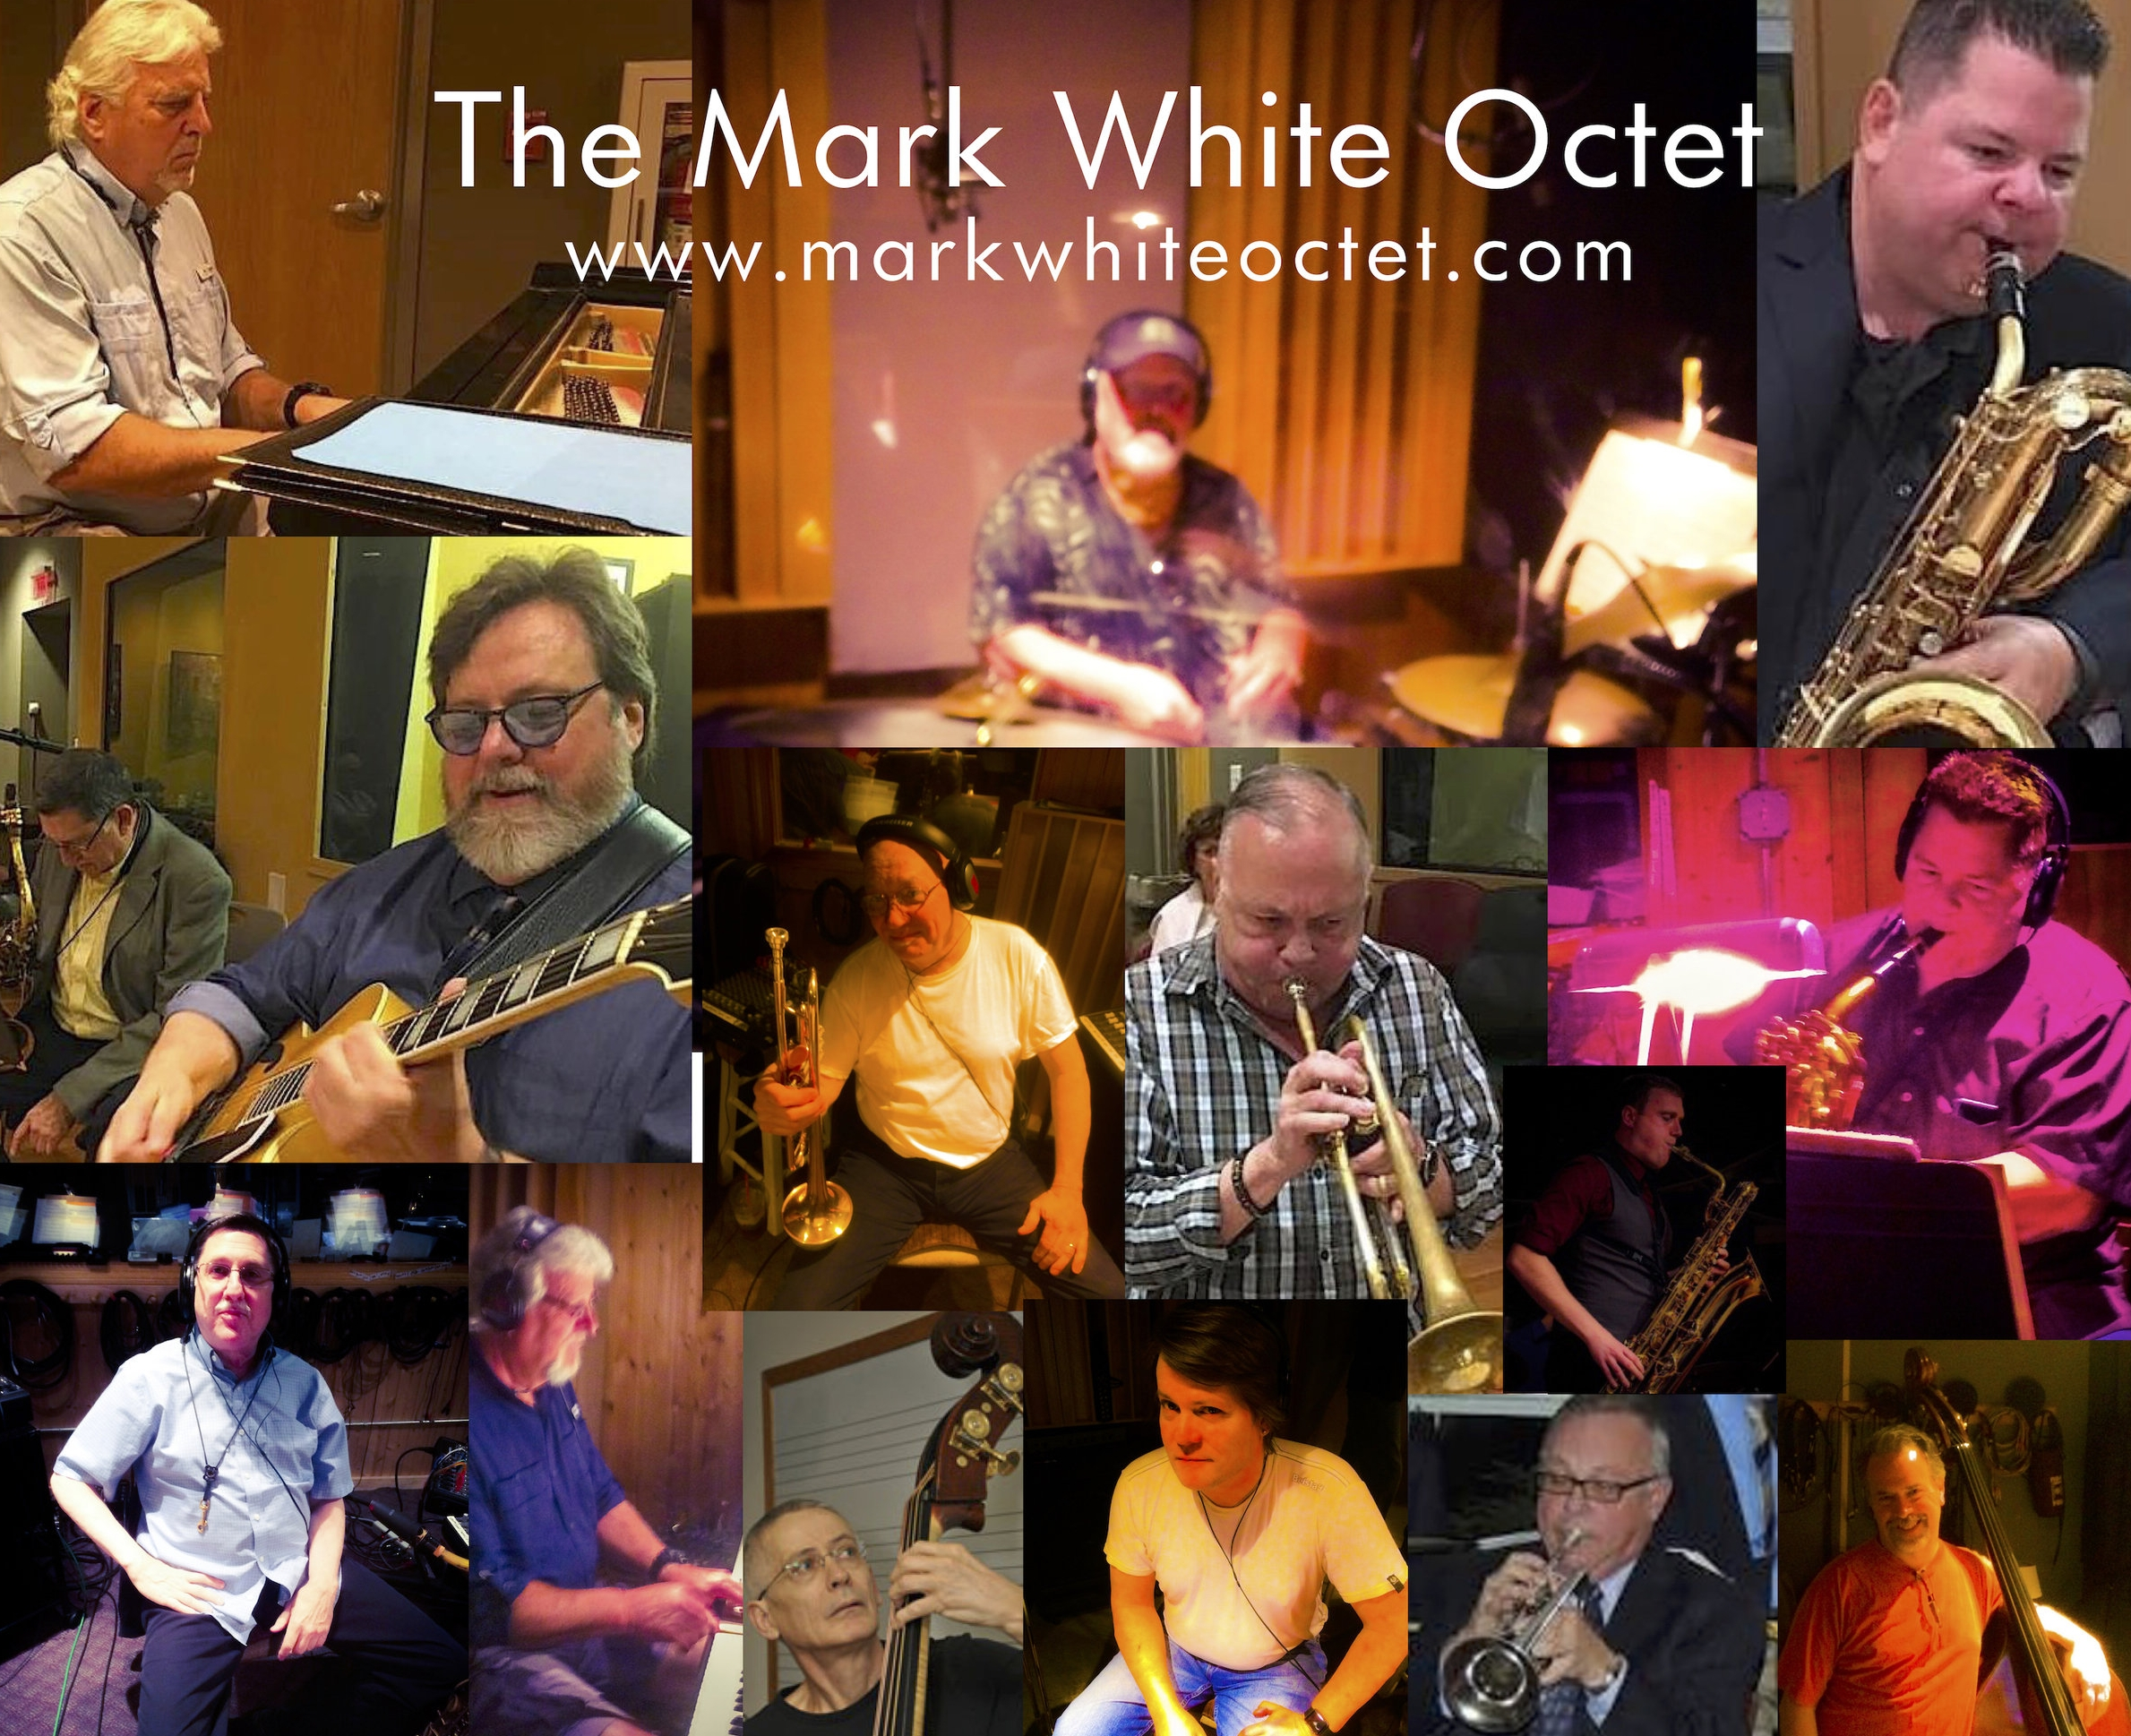 Candid Photos - Mark White Octet